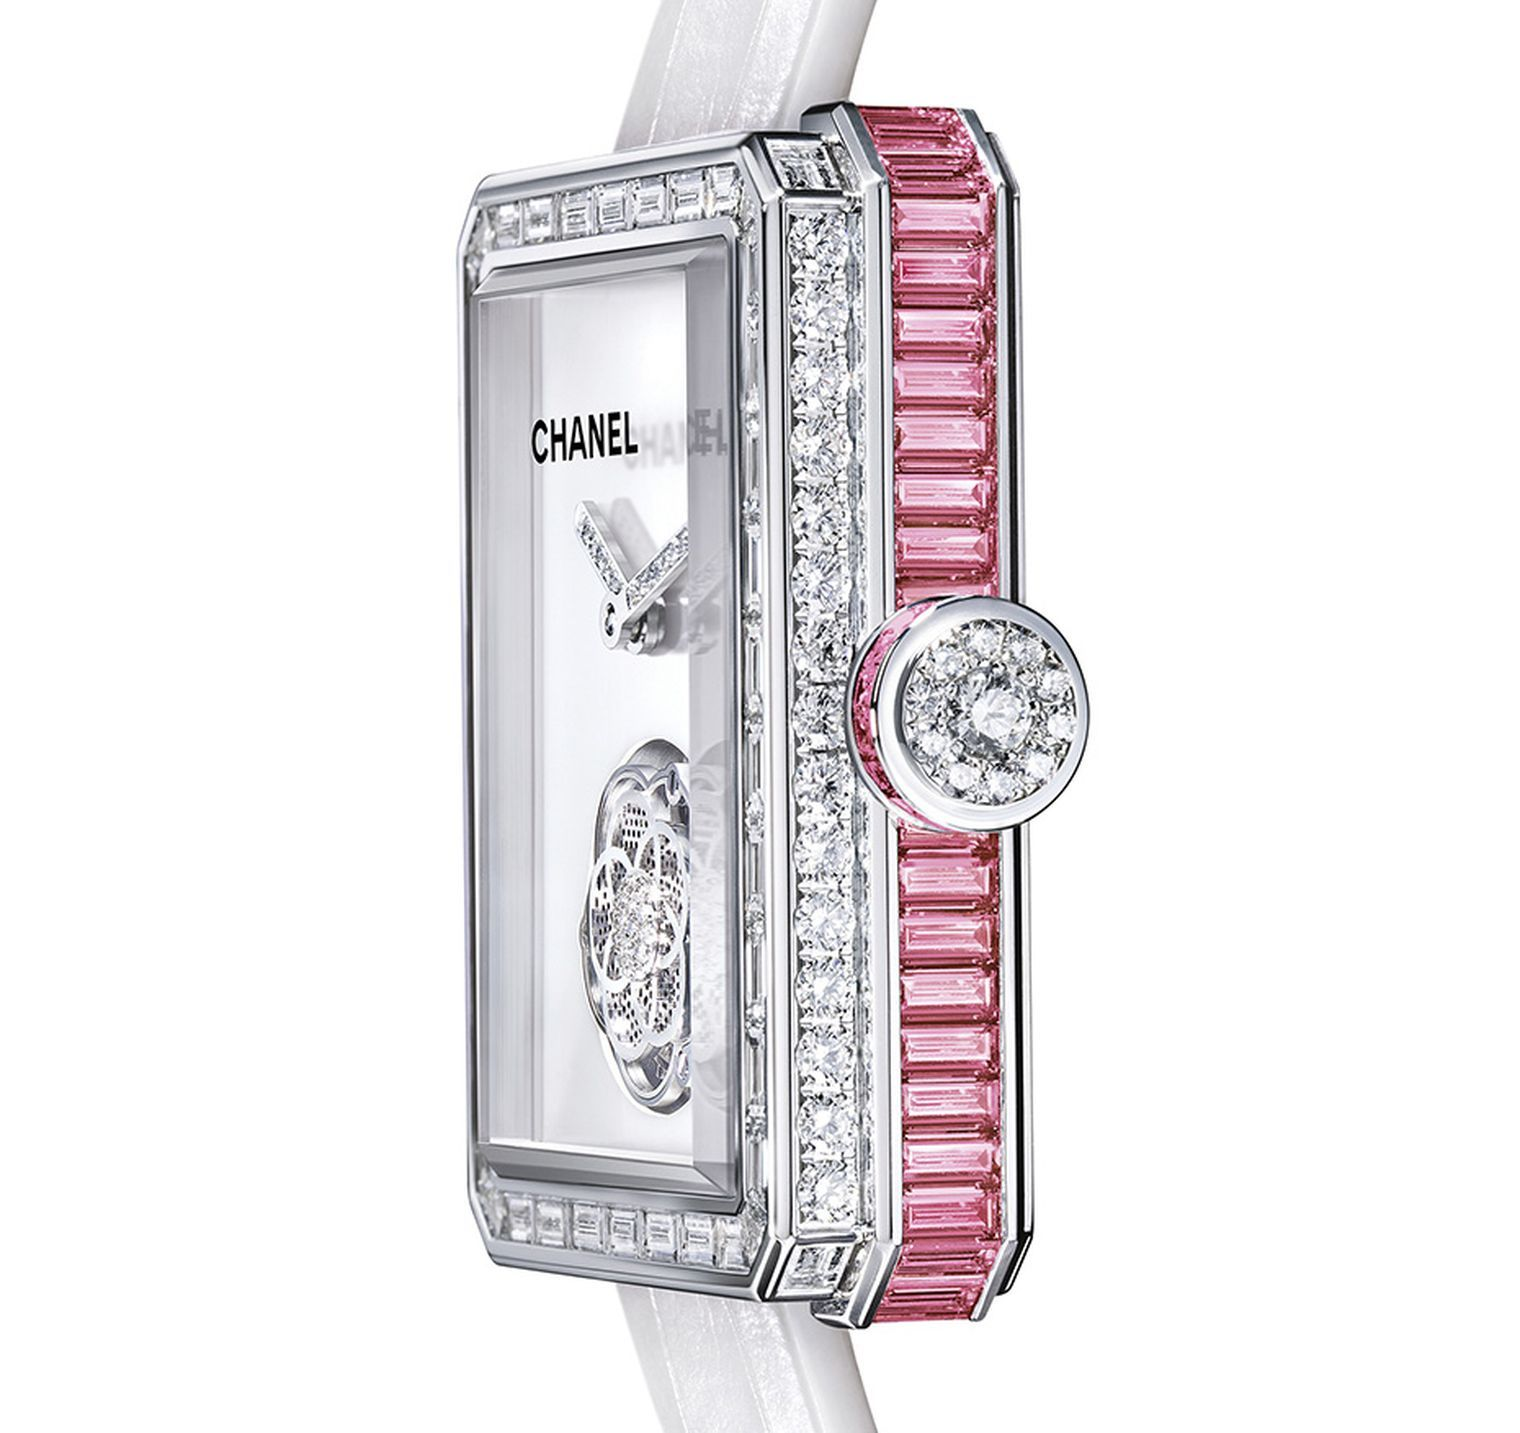 Baselworld 2014 watch review: the new Chanel Premiere Flying Tourbillon watch with pink sapphires